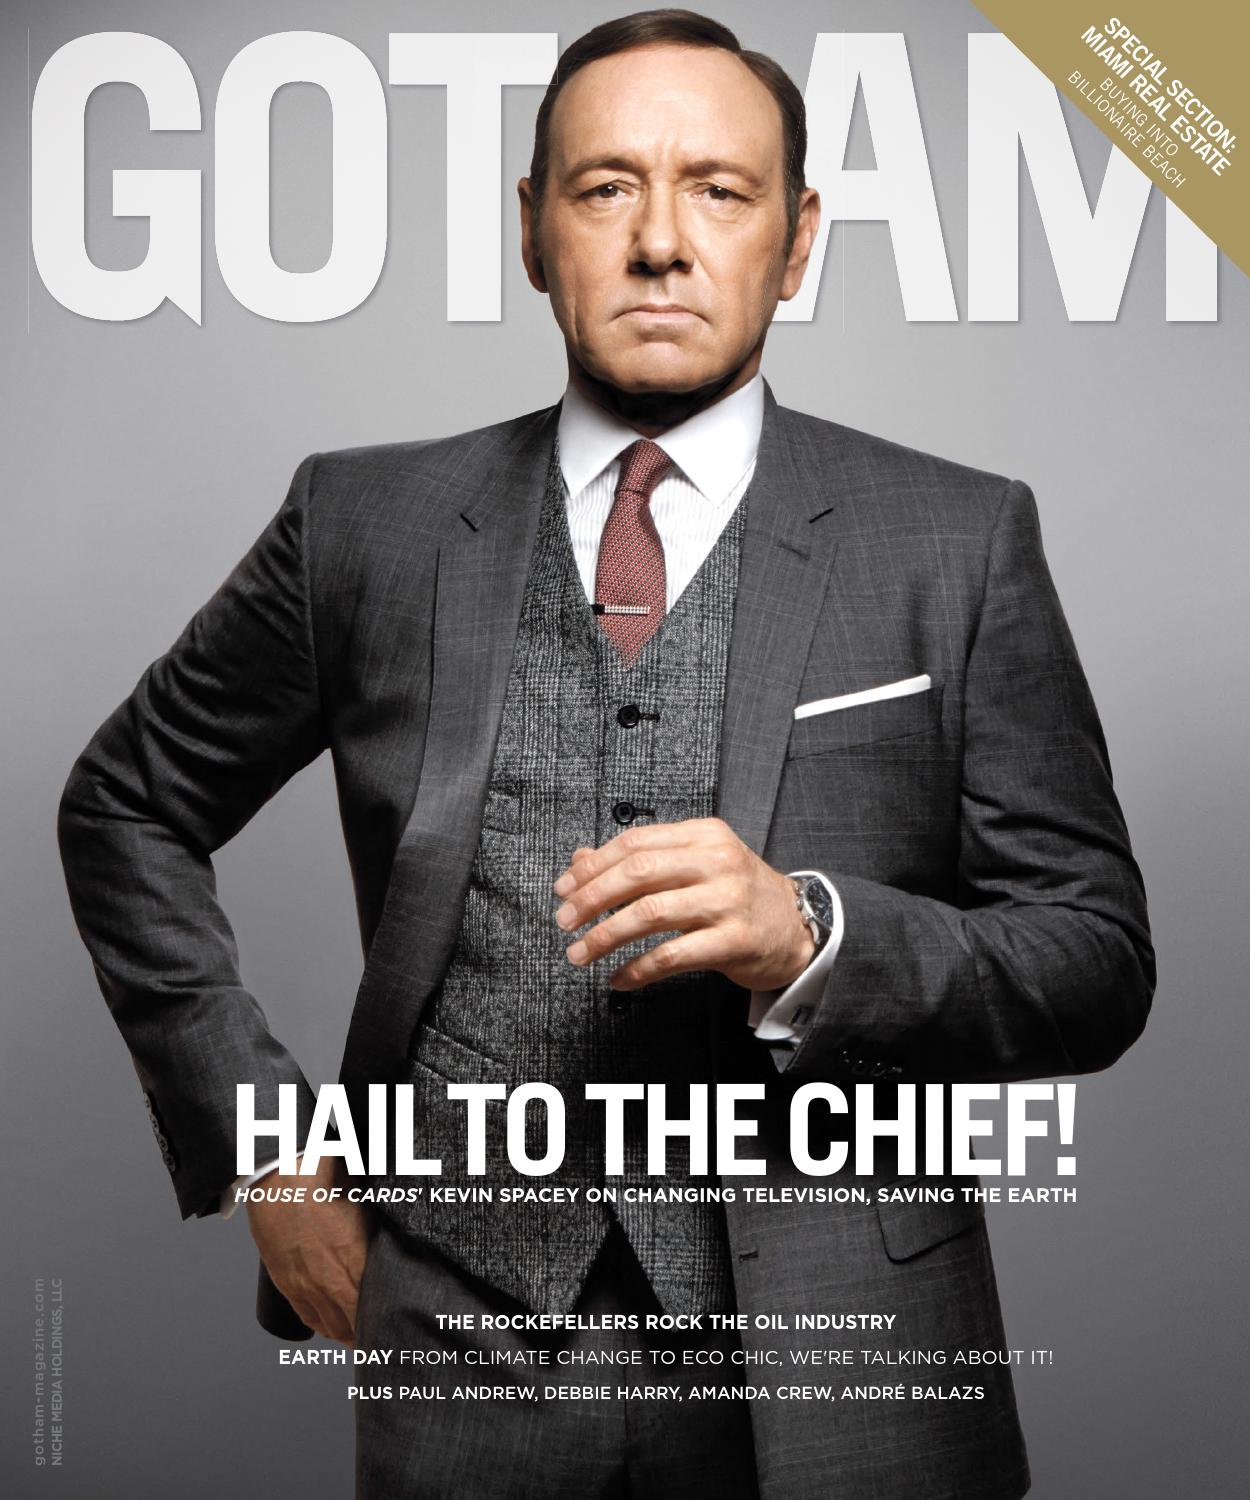 Gotham - 2015 - Issue 2 - Late Spring - Kevin Spacey by MODERN LUXURY -  issuu